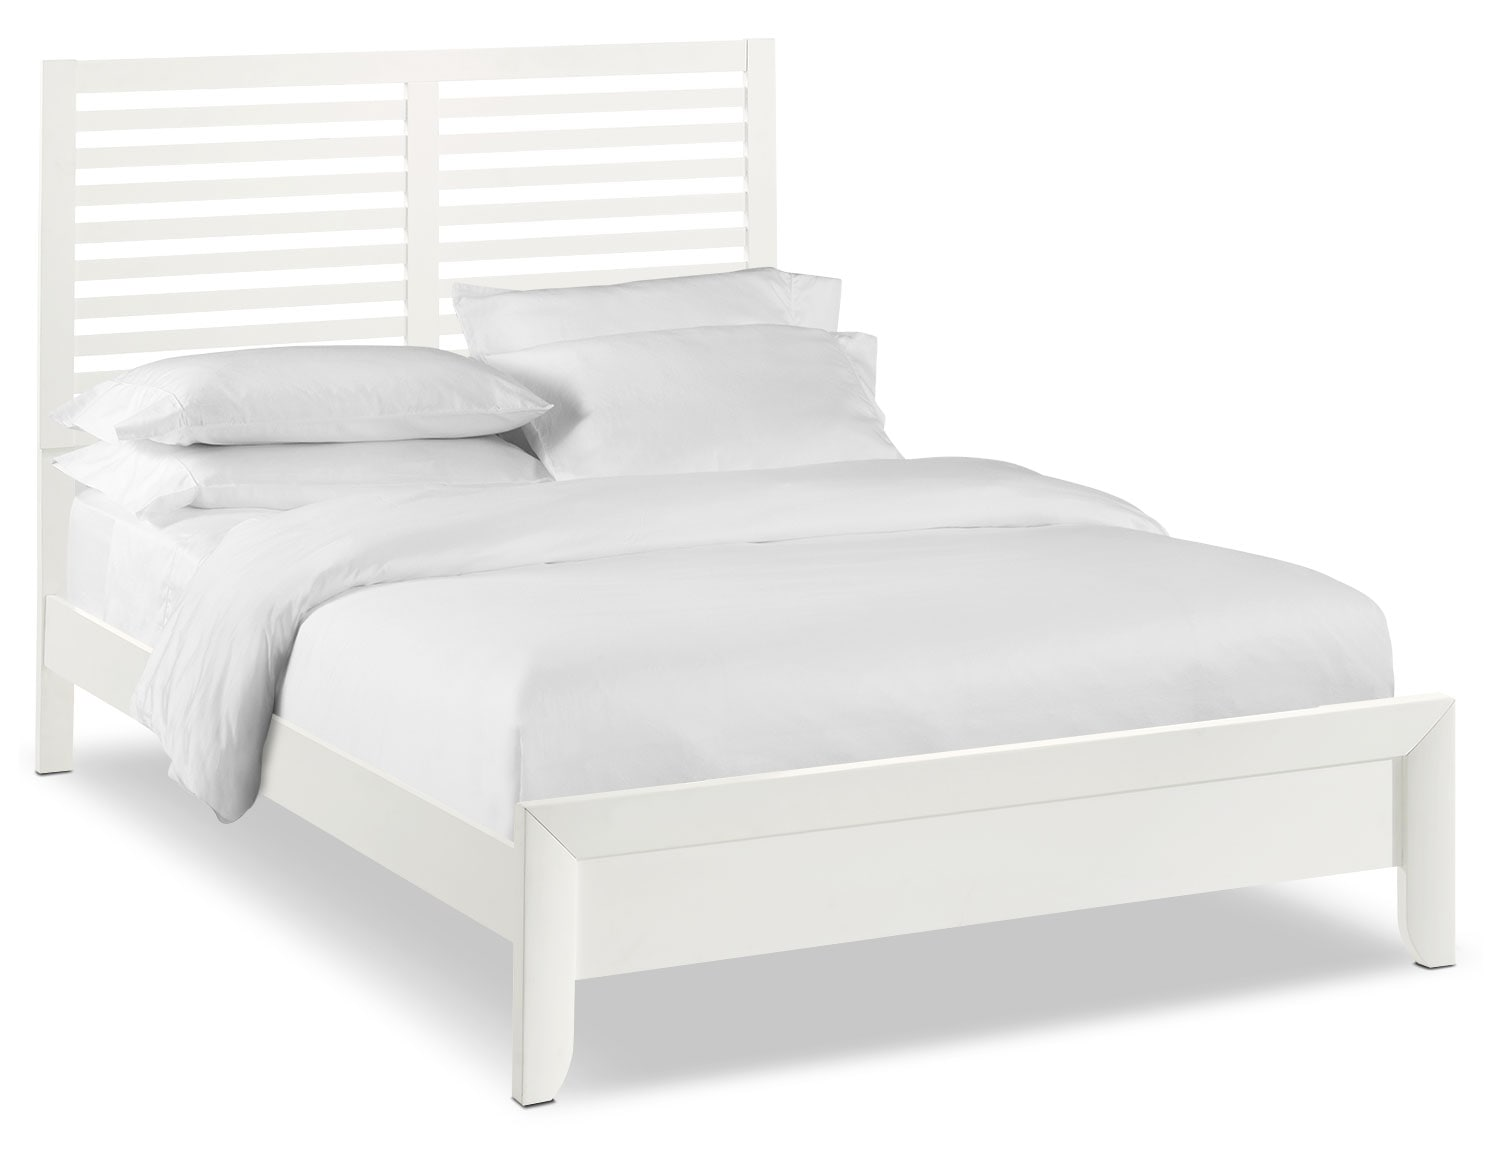 Bedroom Furniture - Braden Full Slat Bed - White